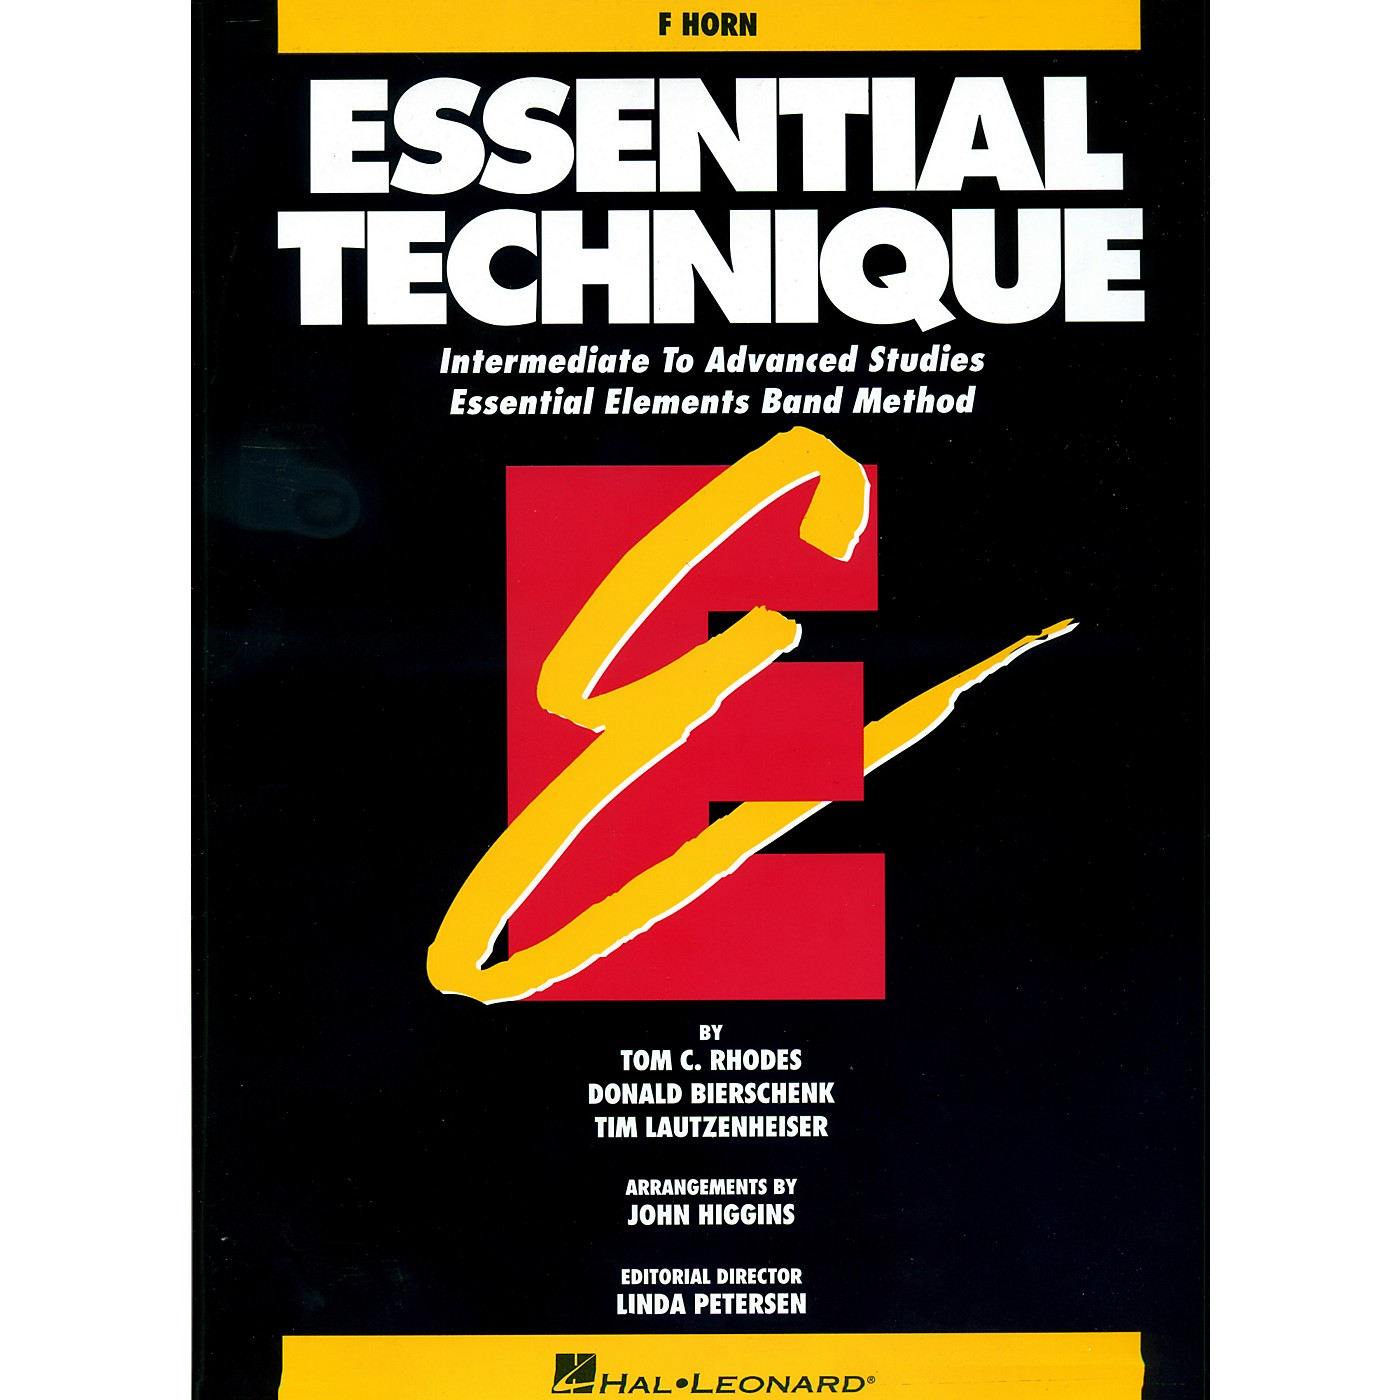 Hal Leonard Essential Technique For French Horn - Intermediate To Advanced Studies thumbnail